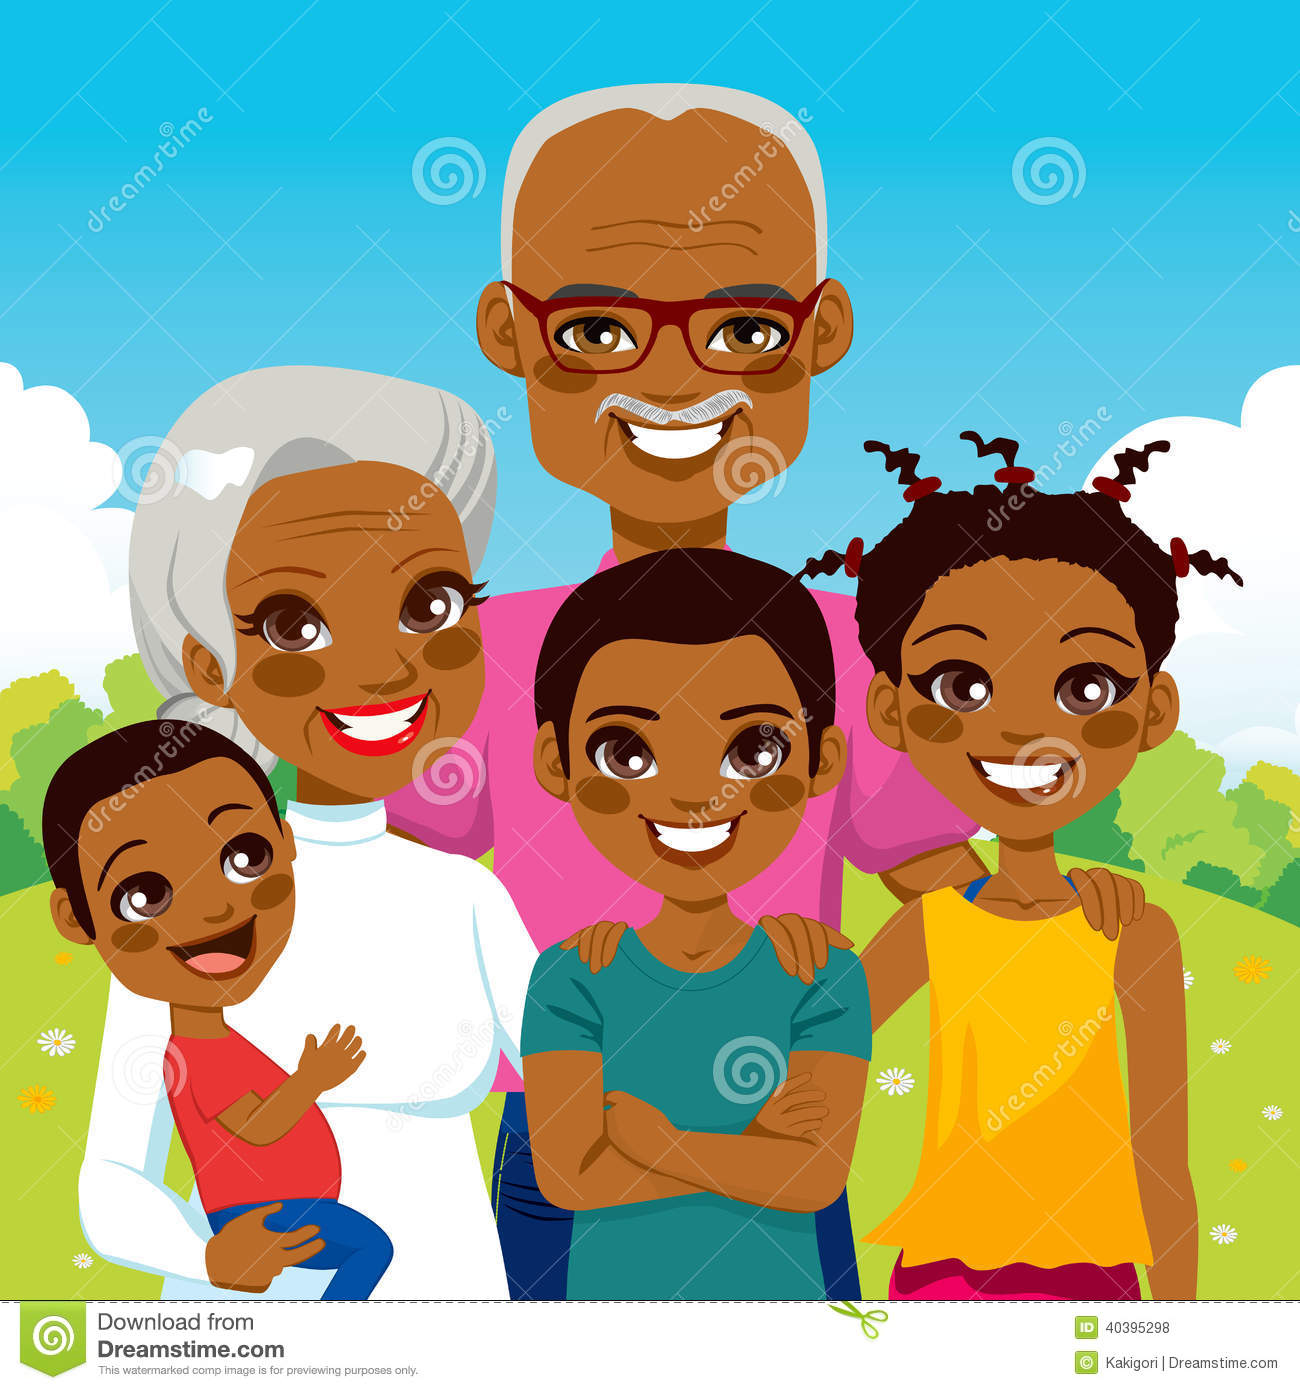 Clipart of black family.